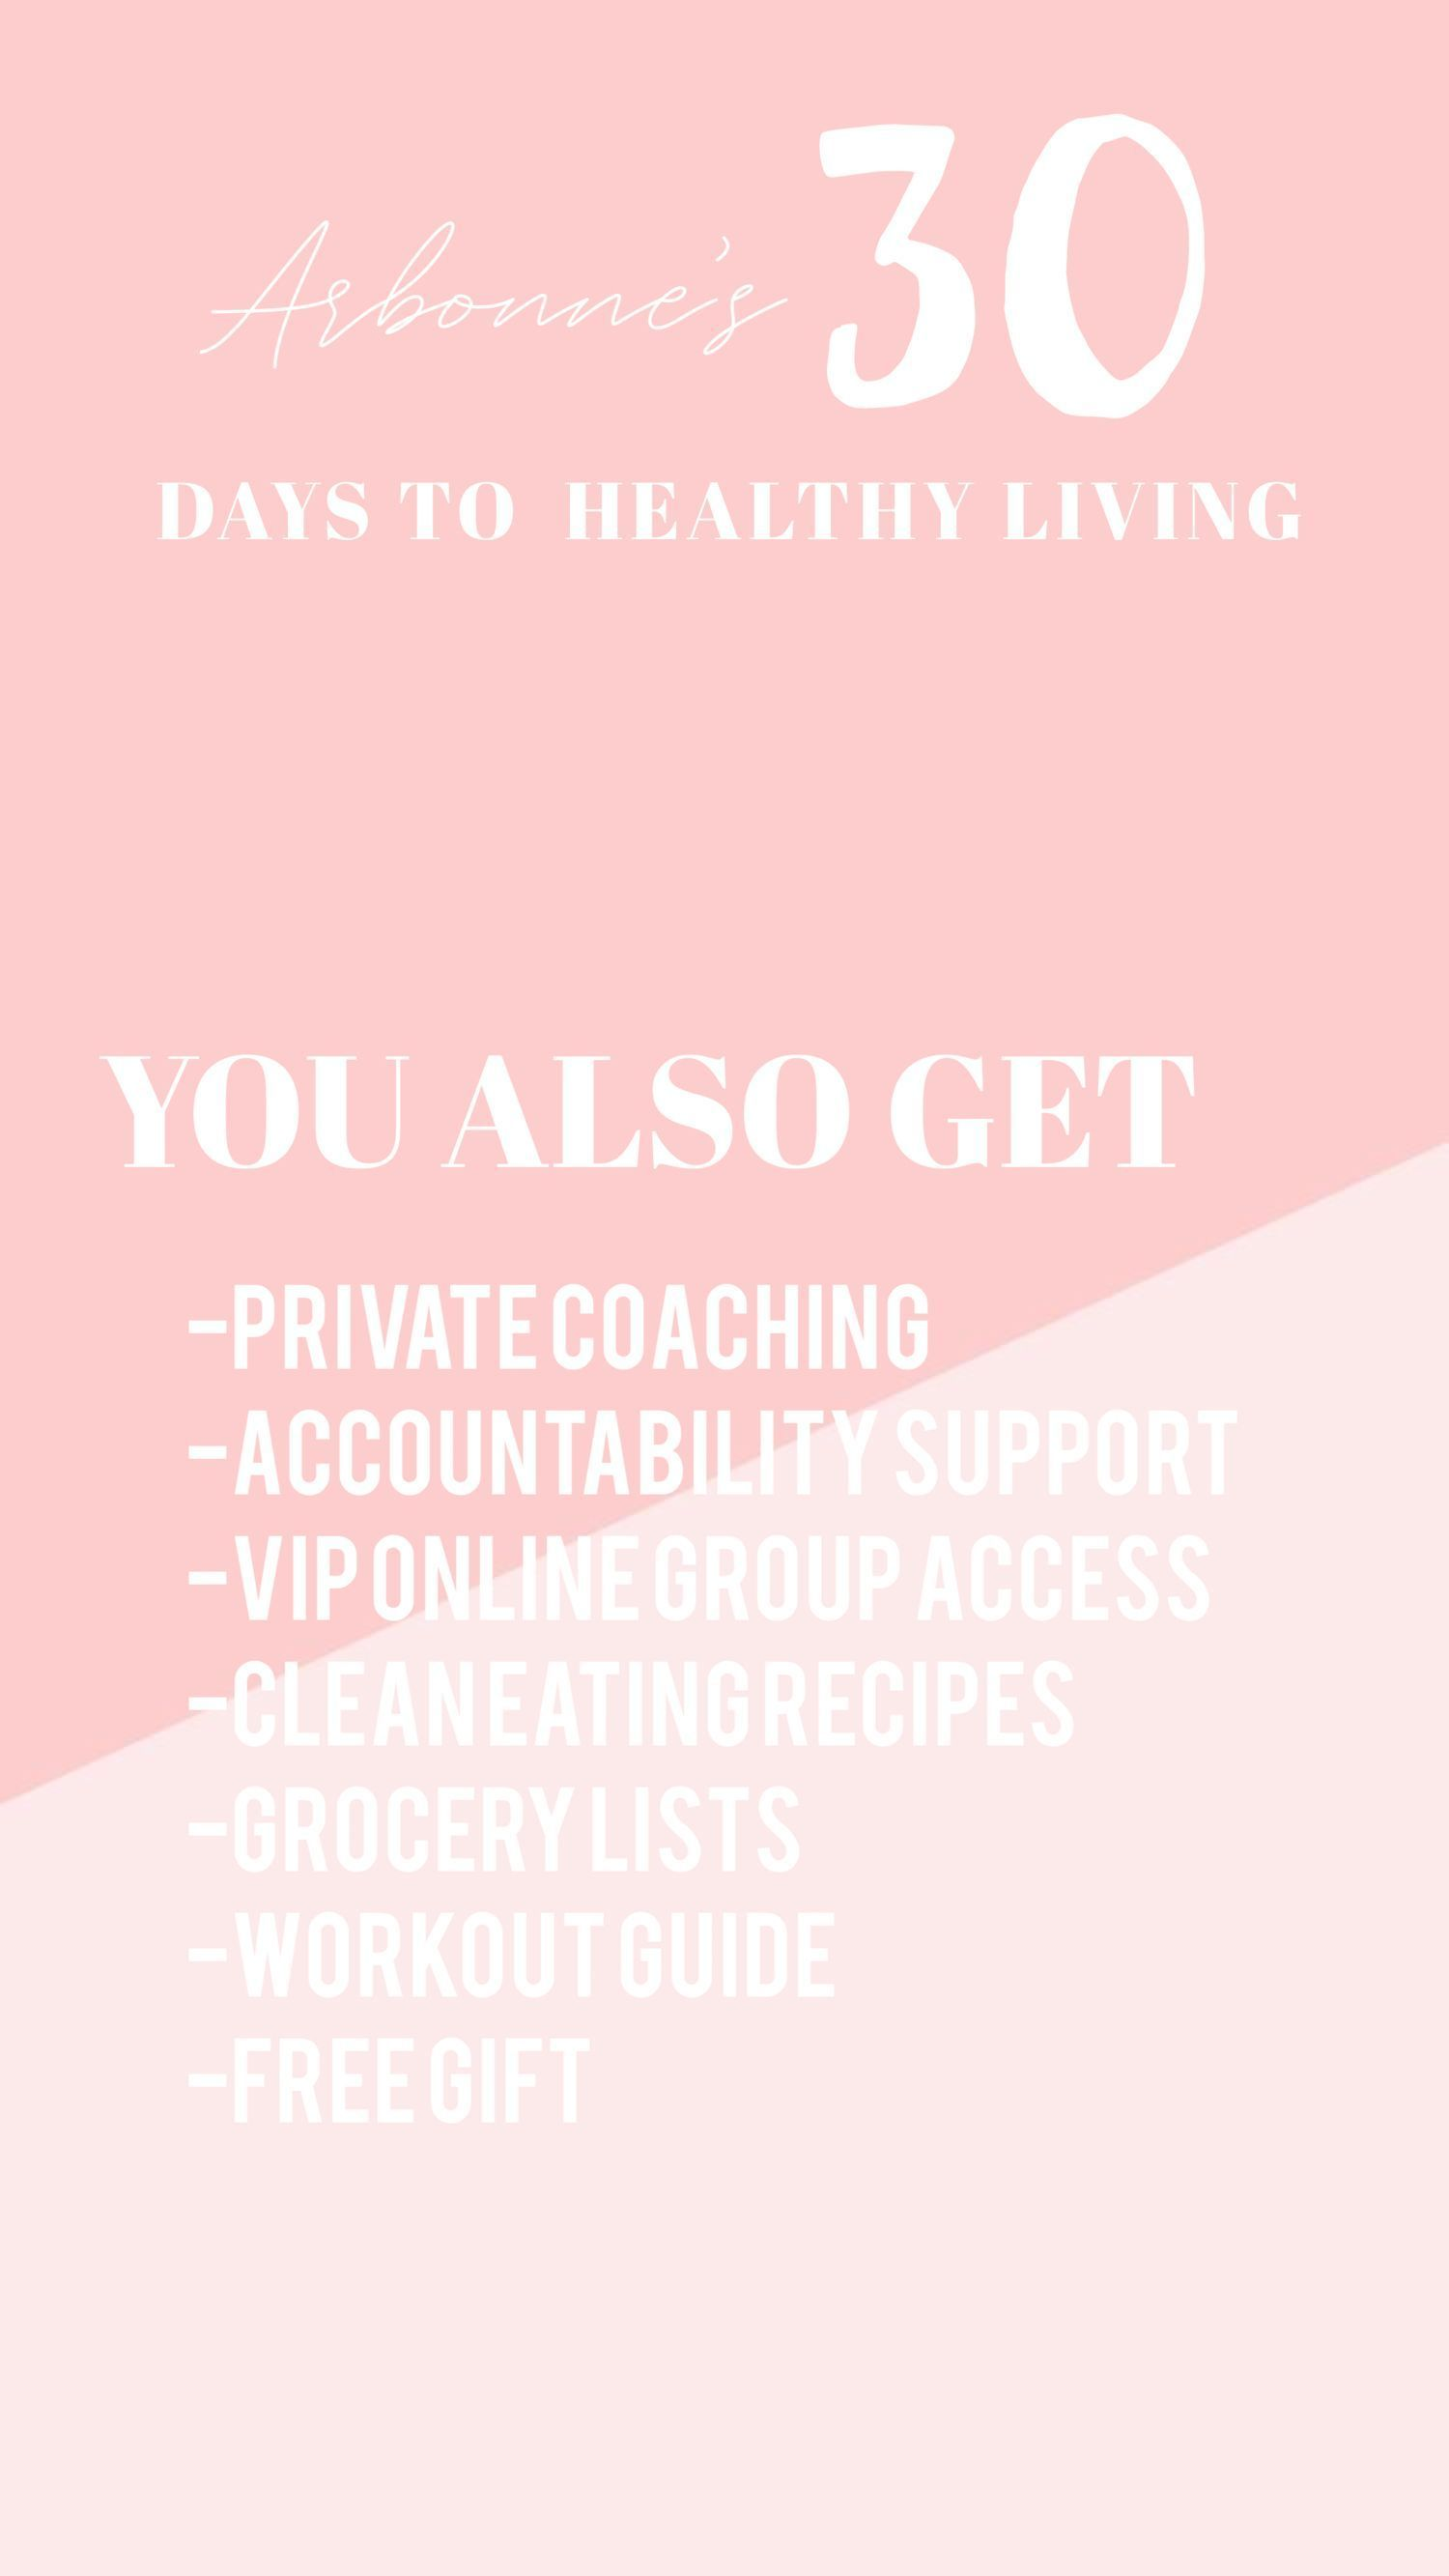 30 days to healthy living Instagram story Arbonne business opp 30 days to healthy living Instagram story Arbonne business opp